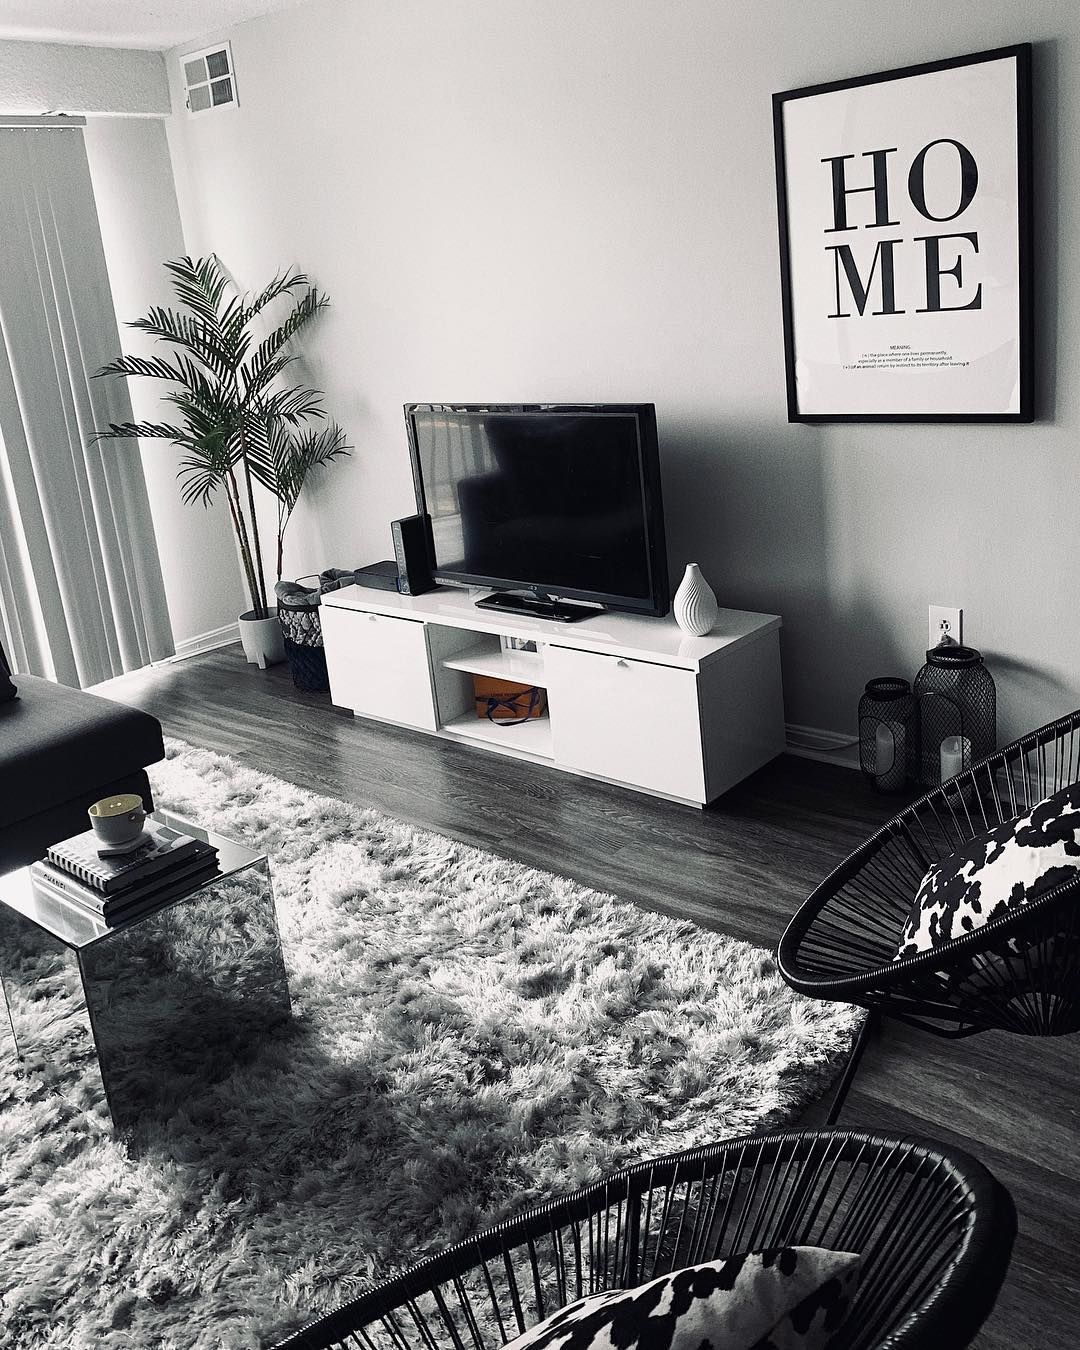 Glow On Instagram La Maison Link In My Bio To See My Apartment Tour Living Room Decor Cozy Living Room Decor Apartment Small Apartment Living Room #purple #and #black #living #room